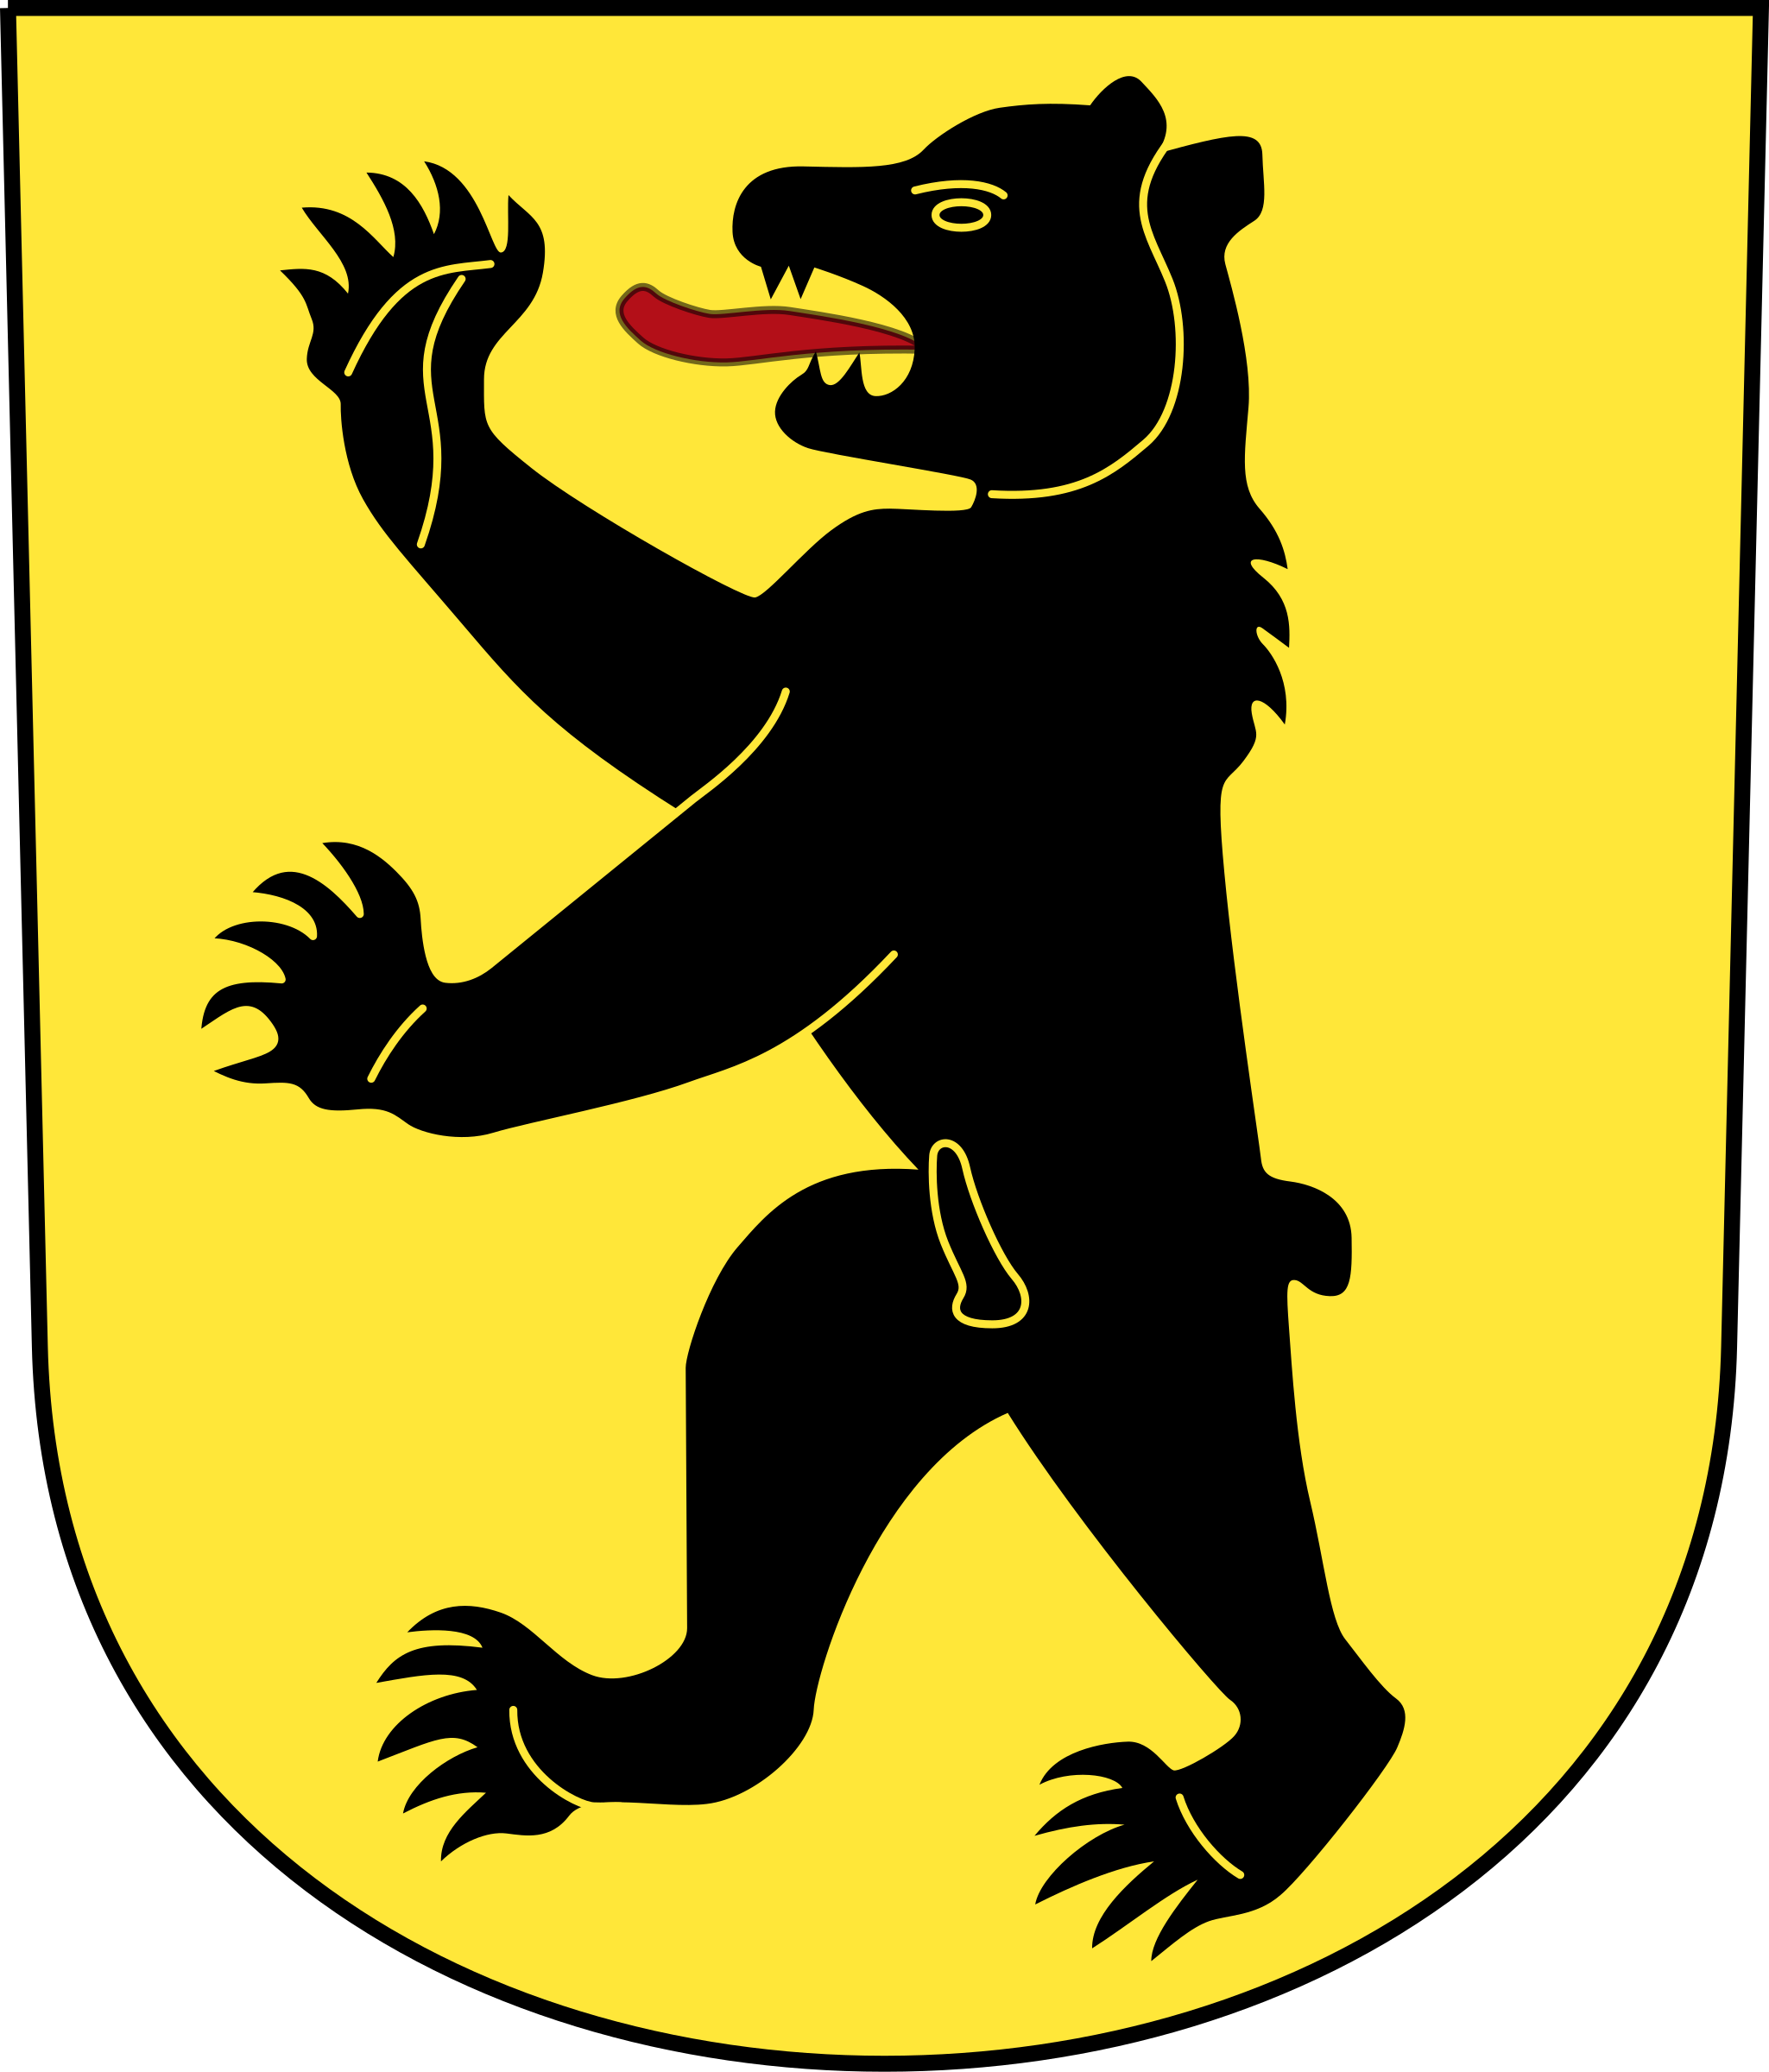 Swiss Bretzwil Coat of Arms as a Shield by wipp